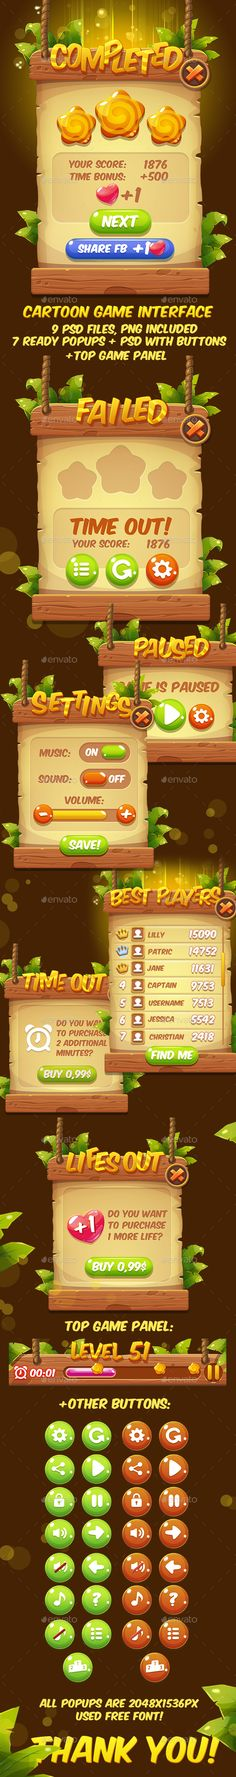 Fantasy Cartoon Game Interface Template PSD, Transparent PNG. Download here: http://graphicriver.net/item/fantasy-cartoon-game-interface/16488013?ref=ksioks